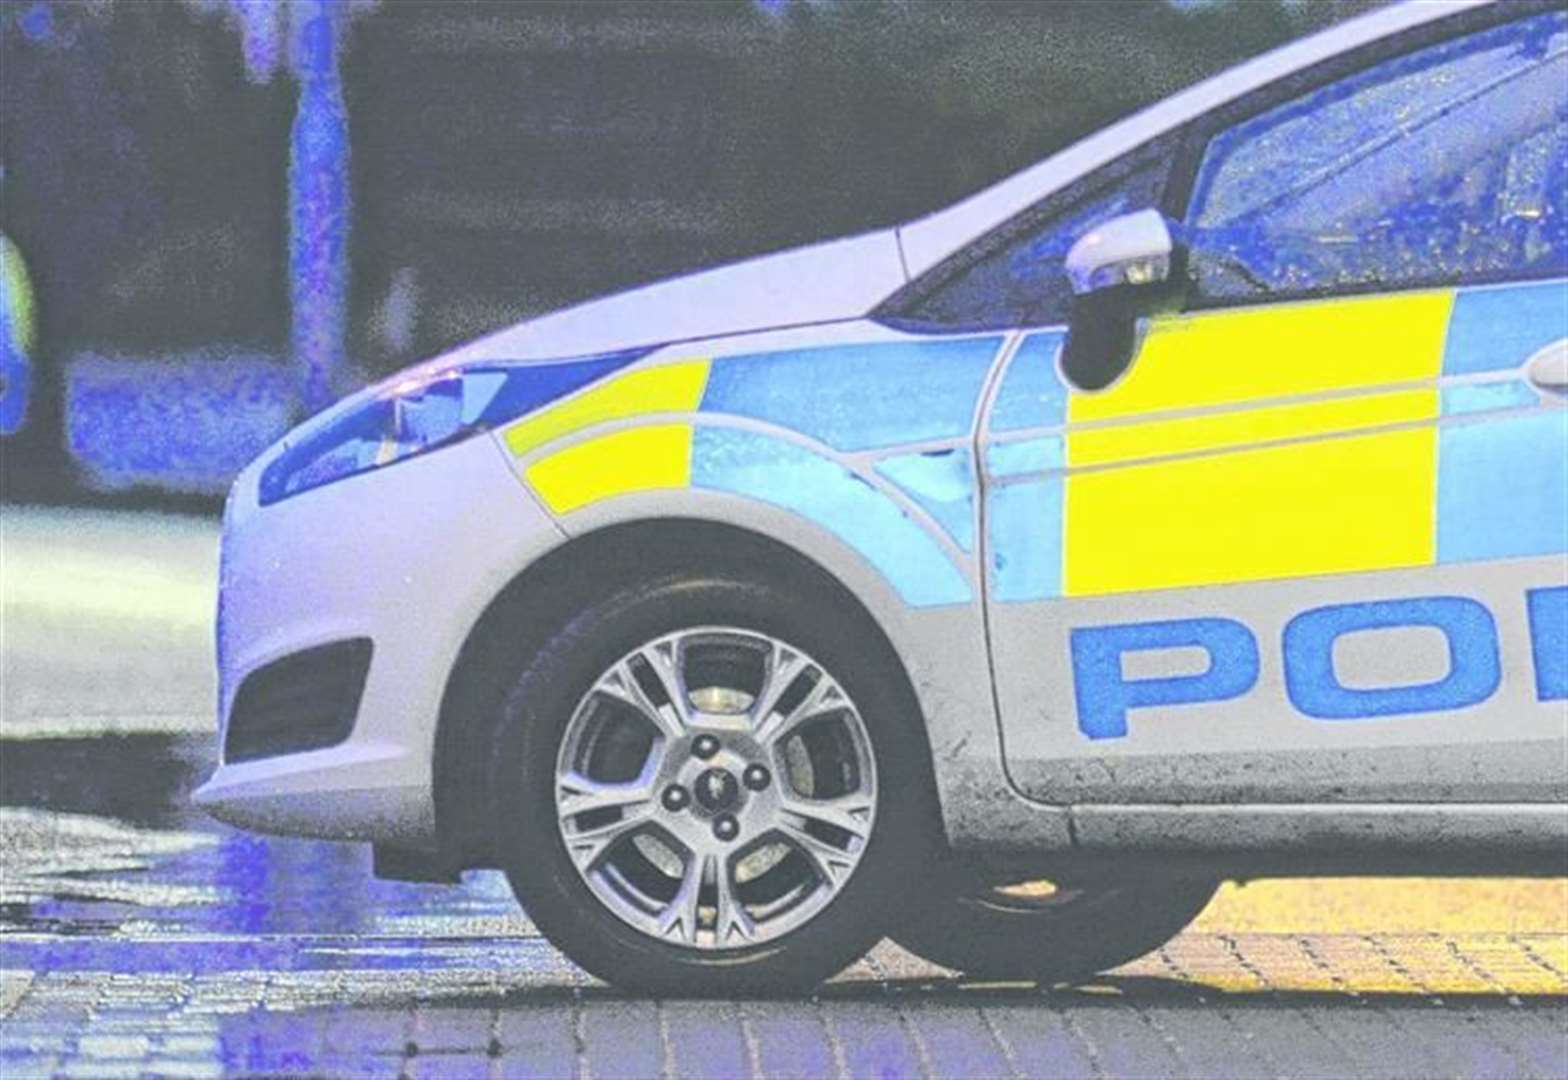 Thetford: Man, 36, charged with three counts of burglary and possession of drugs